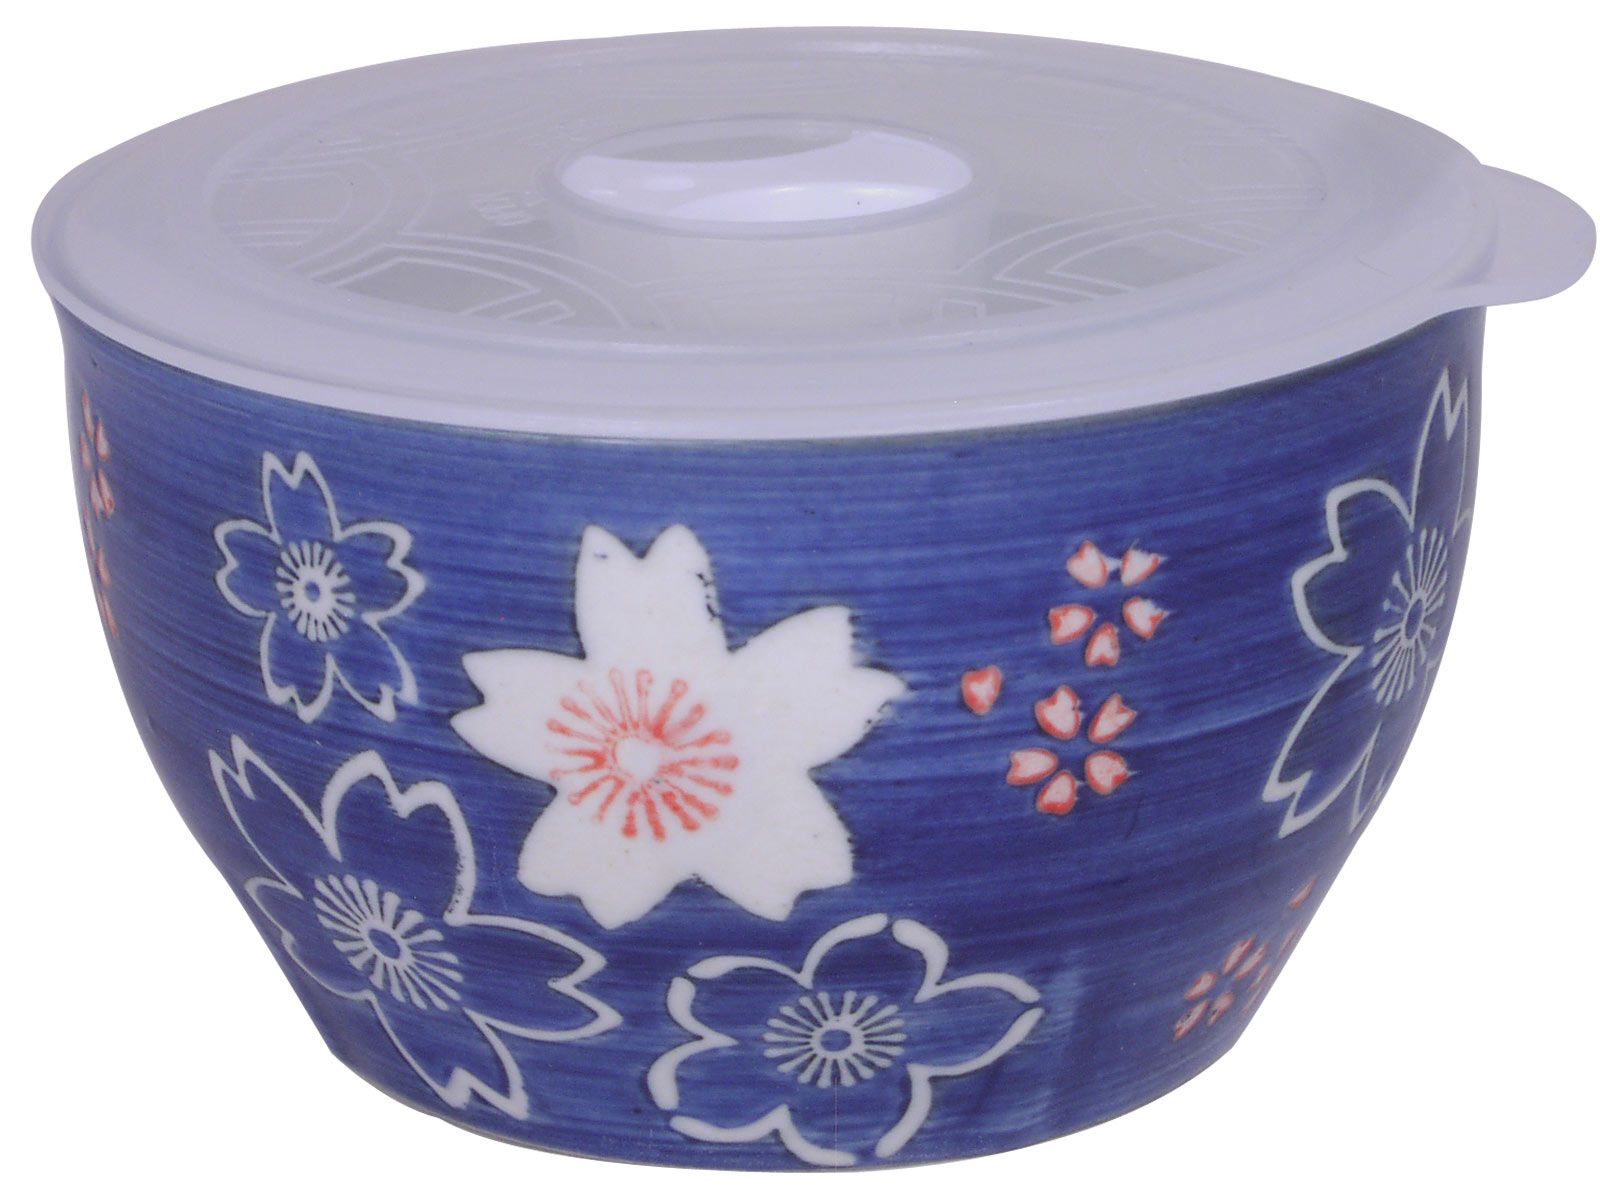 4 1 8 Inch Small Blue And White Cherry Blossom Bowl With Lid White Cherry Blossom Natural Ceramic Bowl